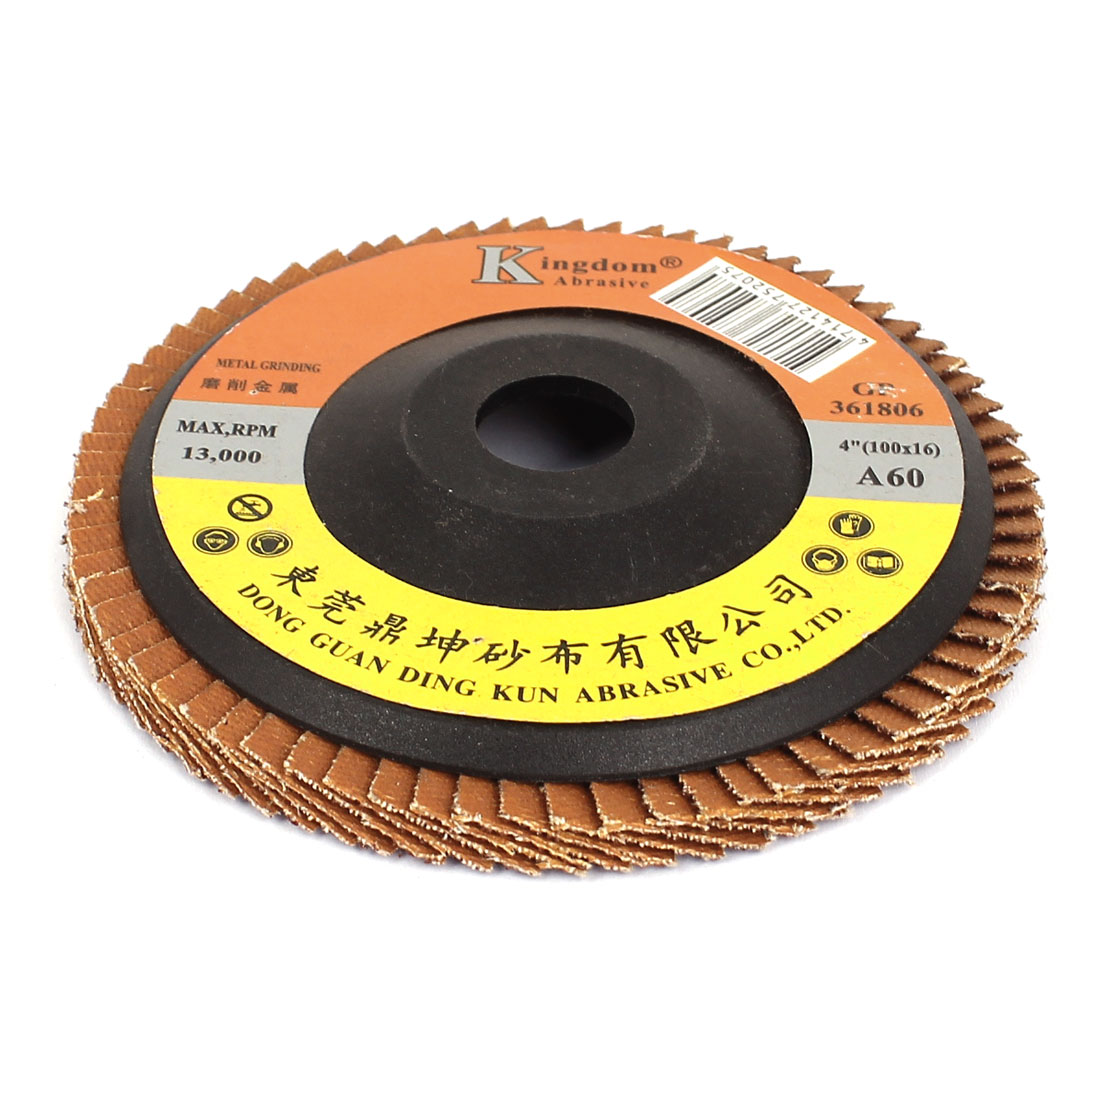 "4"" 100mm Diameter Sanding Flap Disc Grinding Wheel 60 Grit for Angle Grinder"